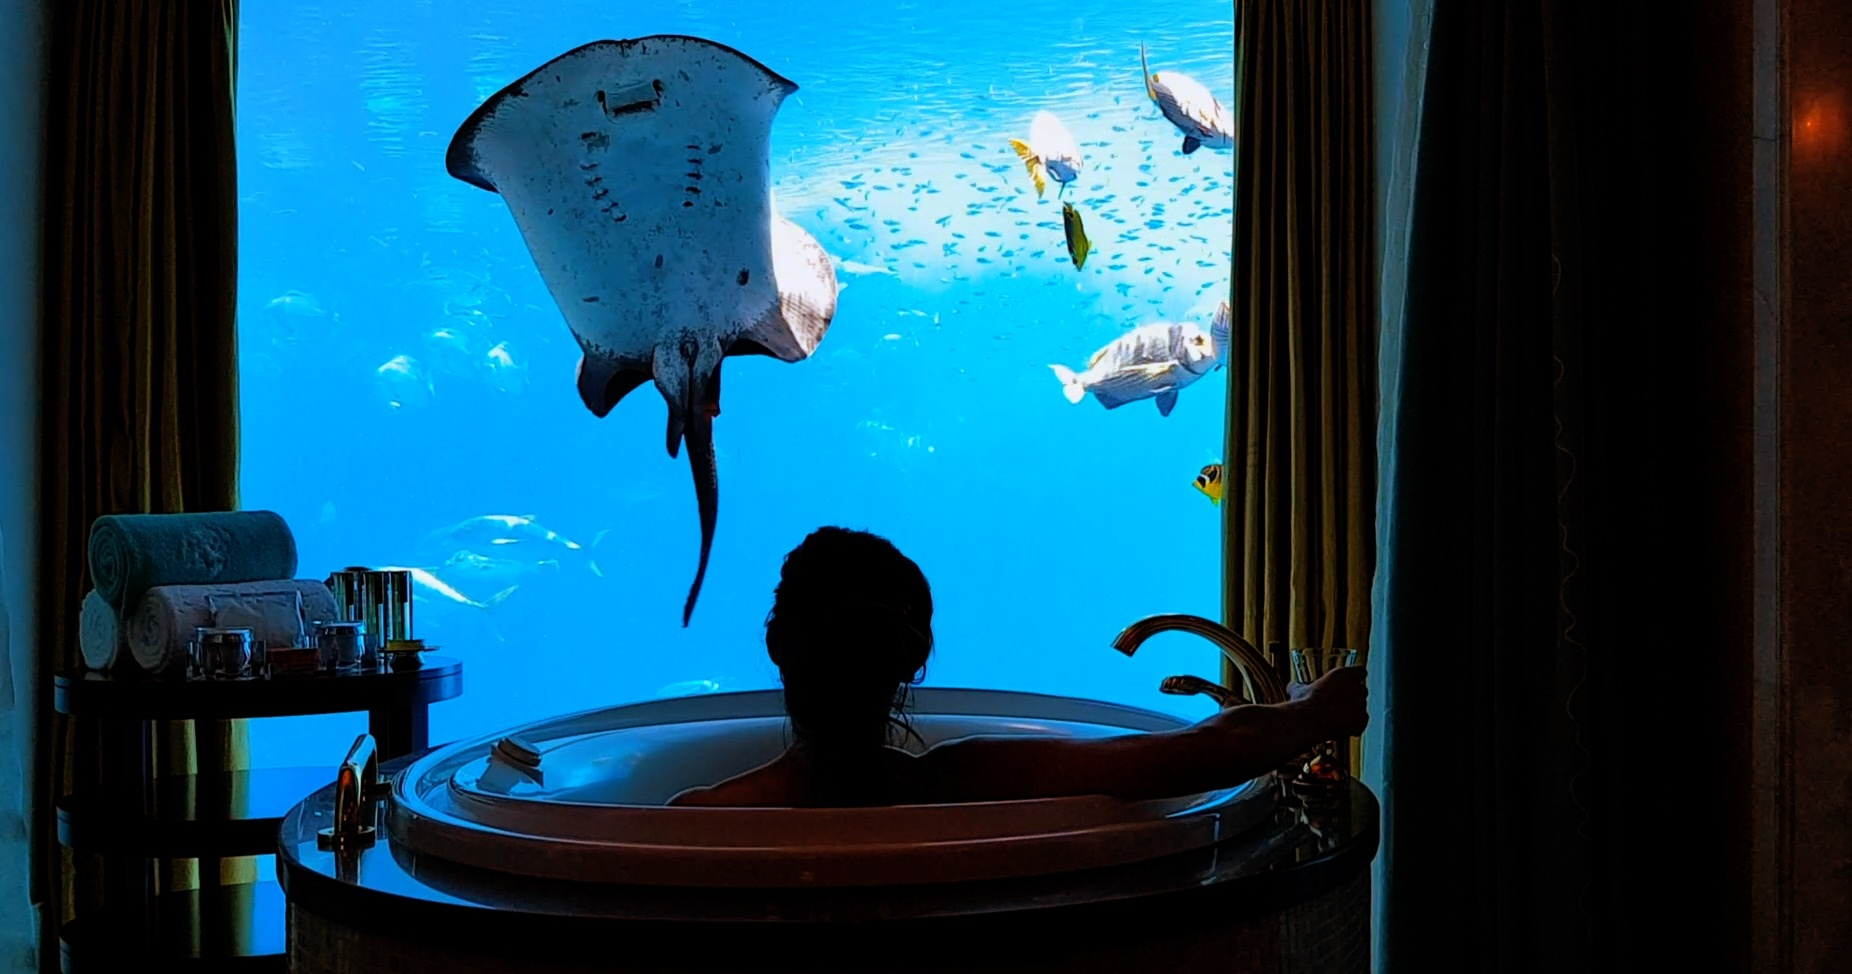 insane luxury hotels in the world - underwater suite at atlantis the palm jumeirah bath tub